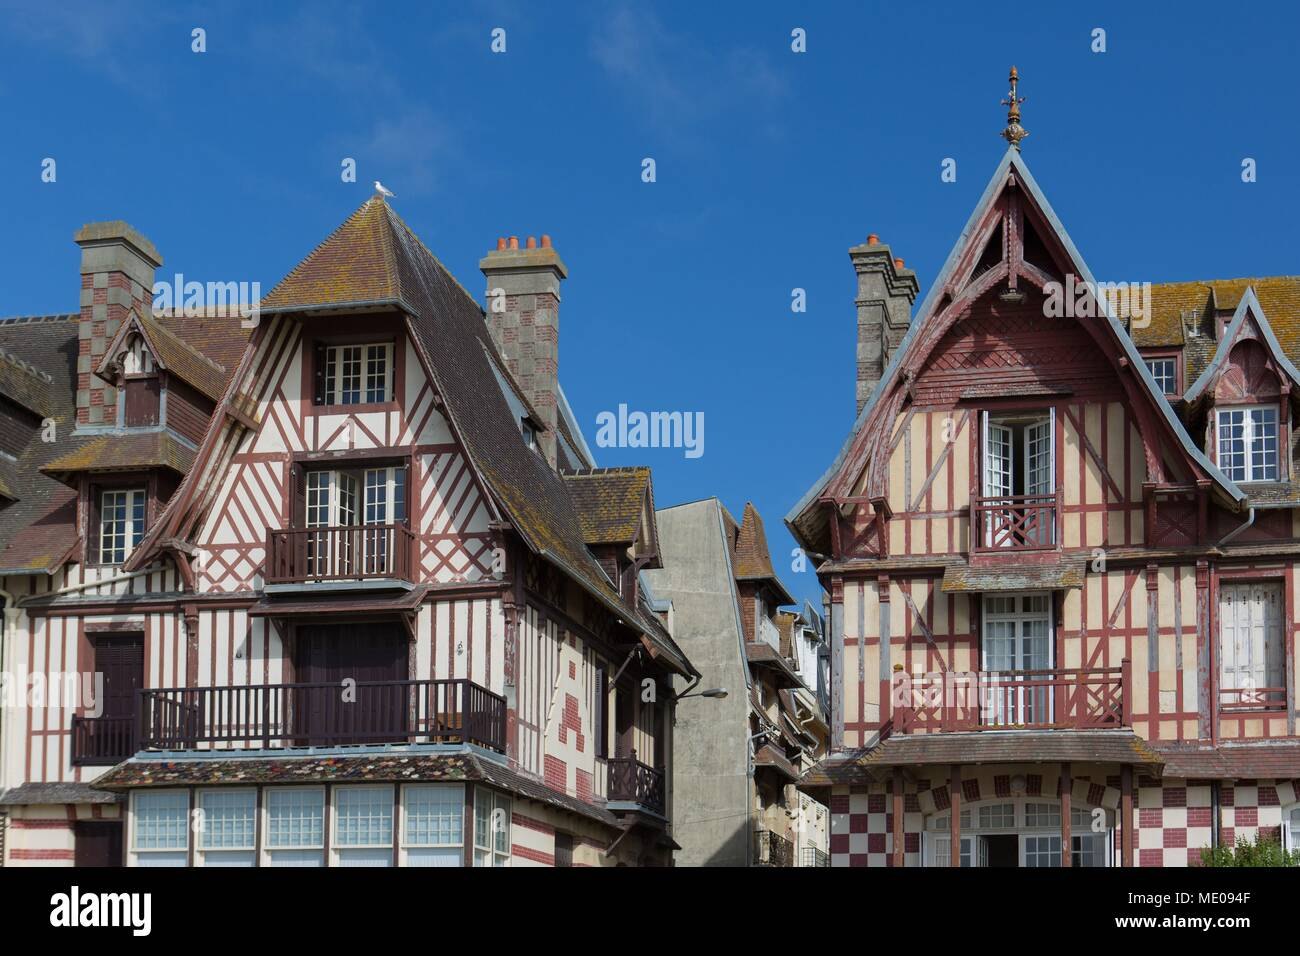 France, Normandy Region, Former Lower Normandy, Trouville Sur Mer, Beach,  Villas On The Seafront